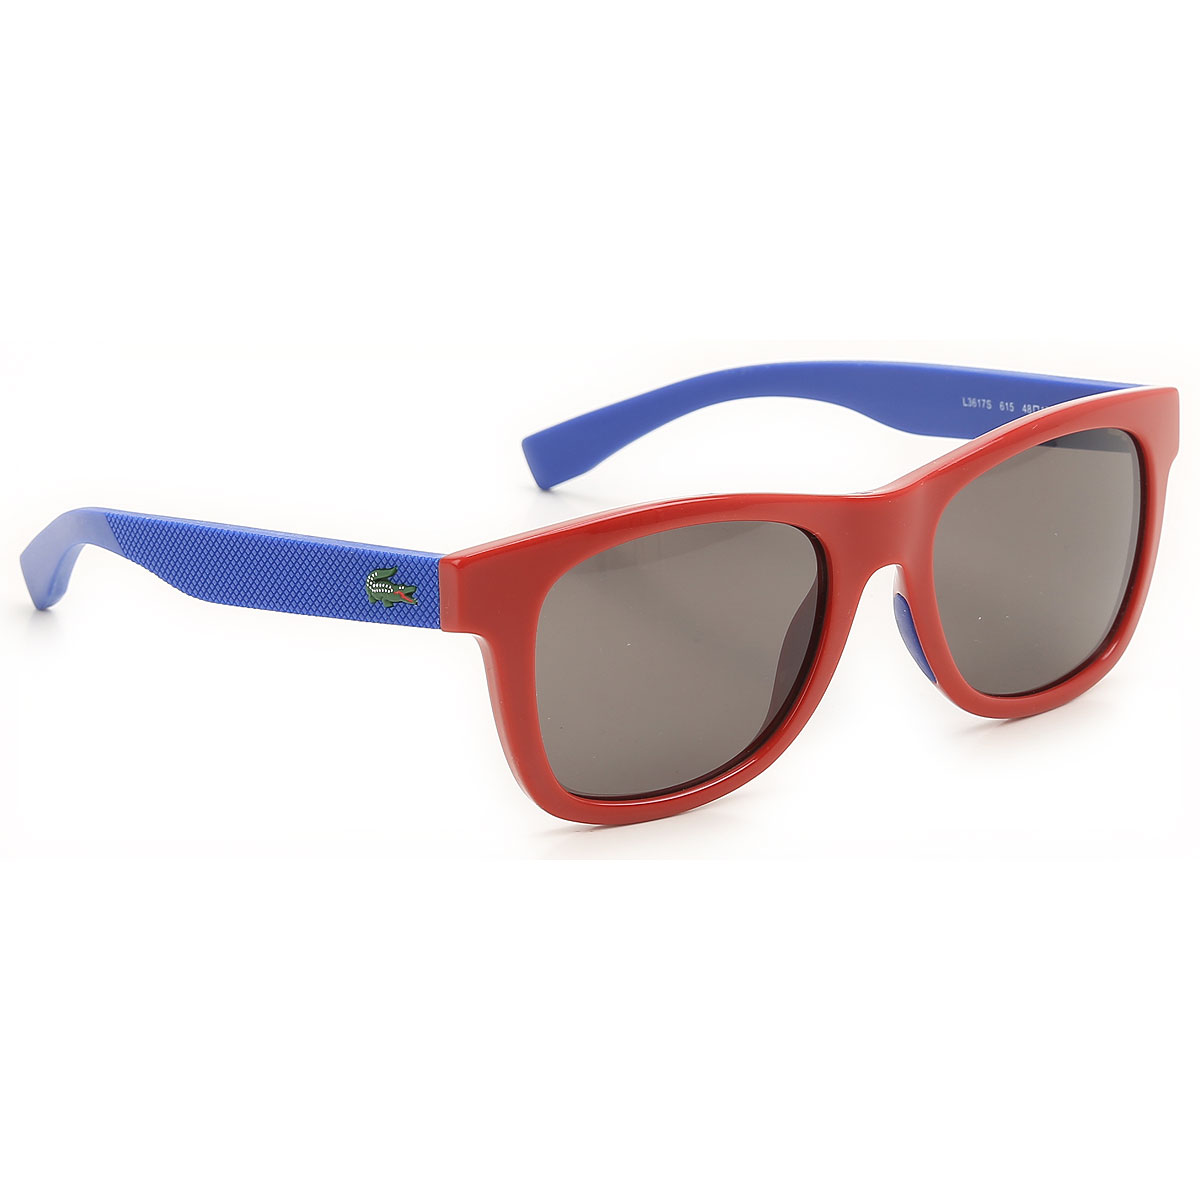 Image of Lacoste Kids Sunglasses for Boys On Sale, Red, 2017